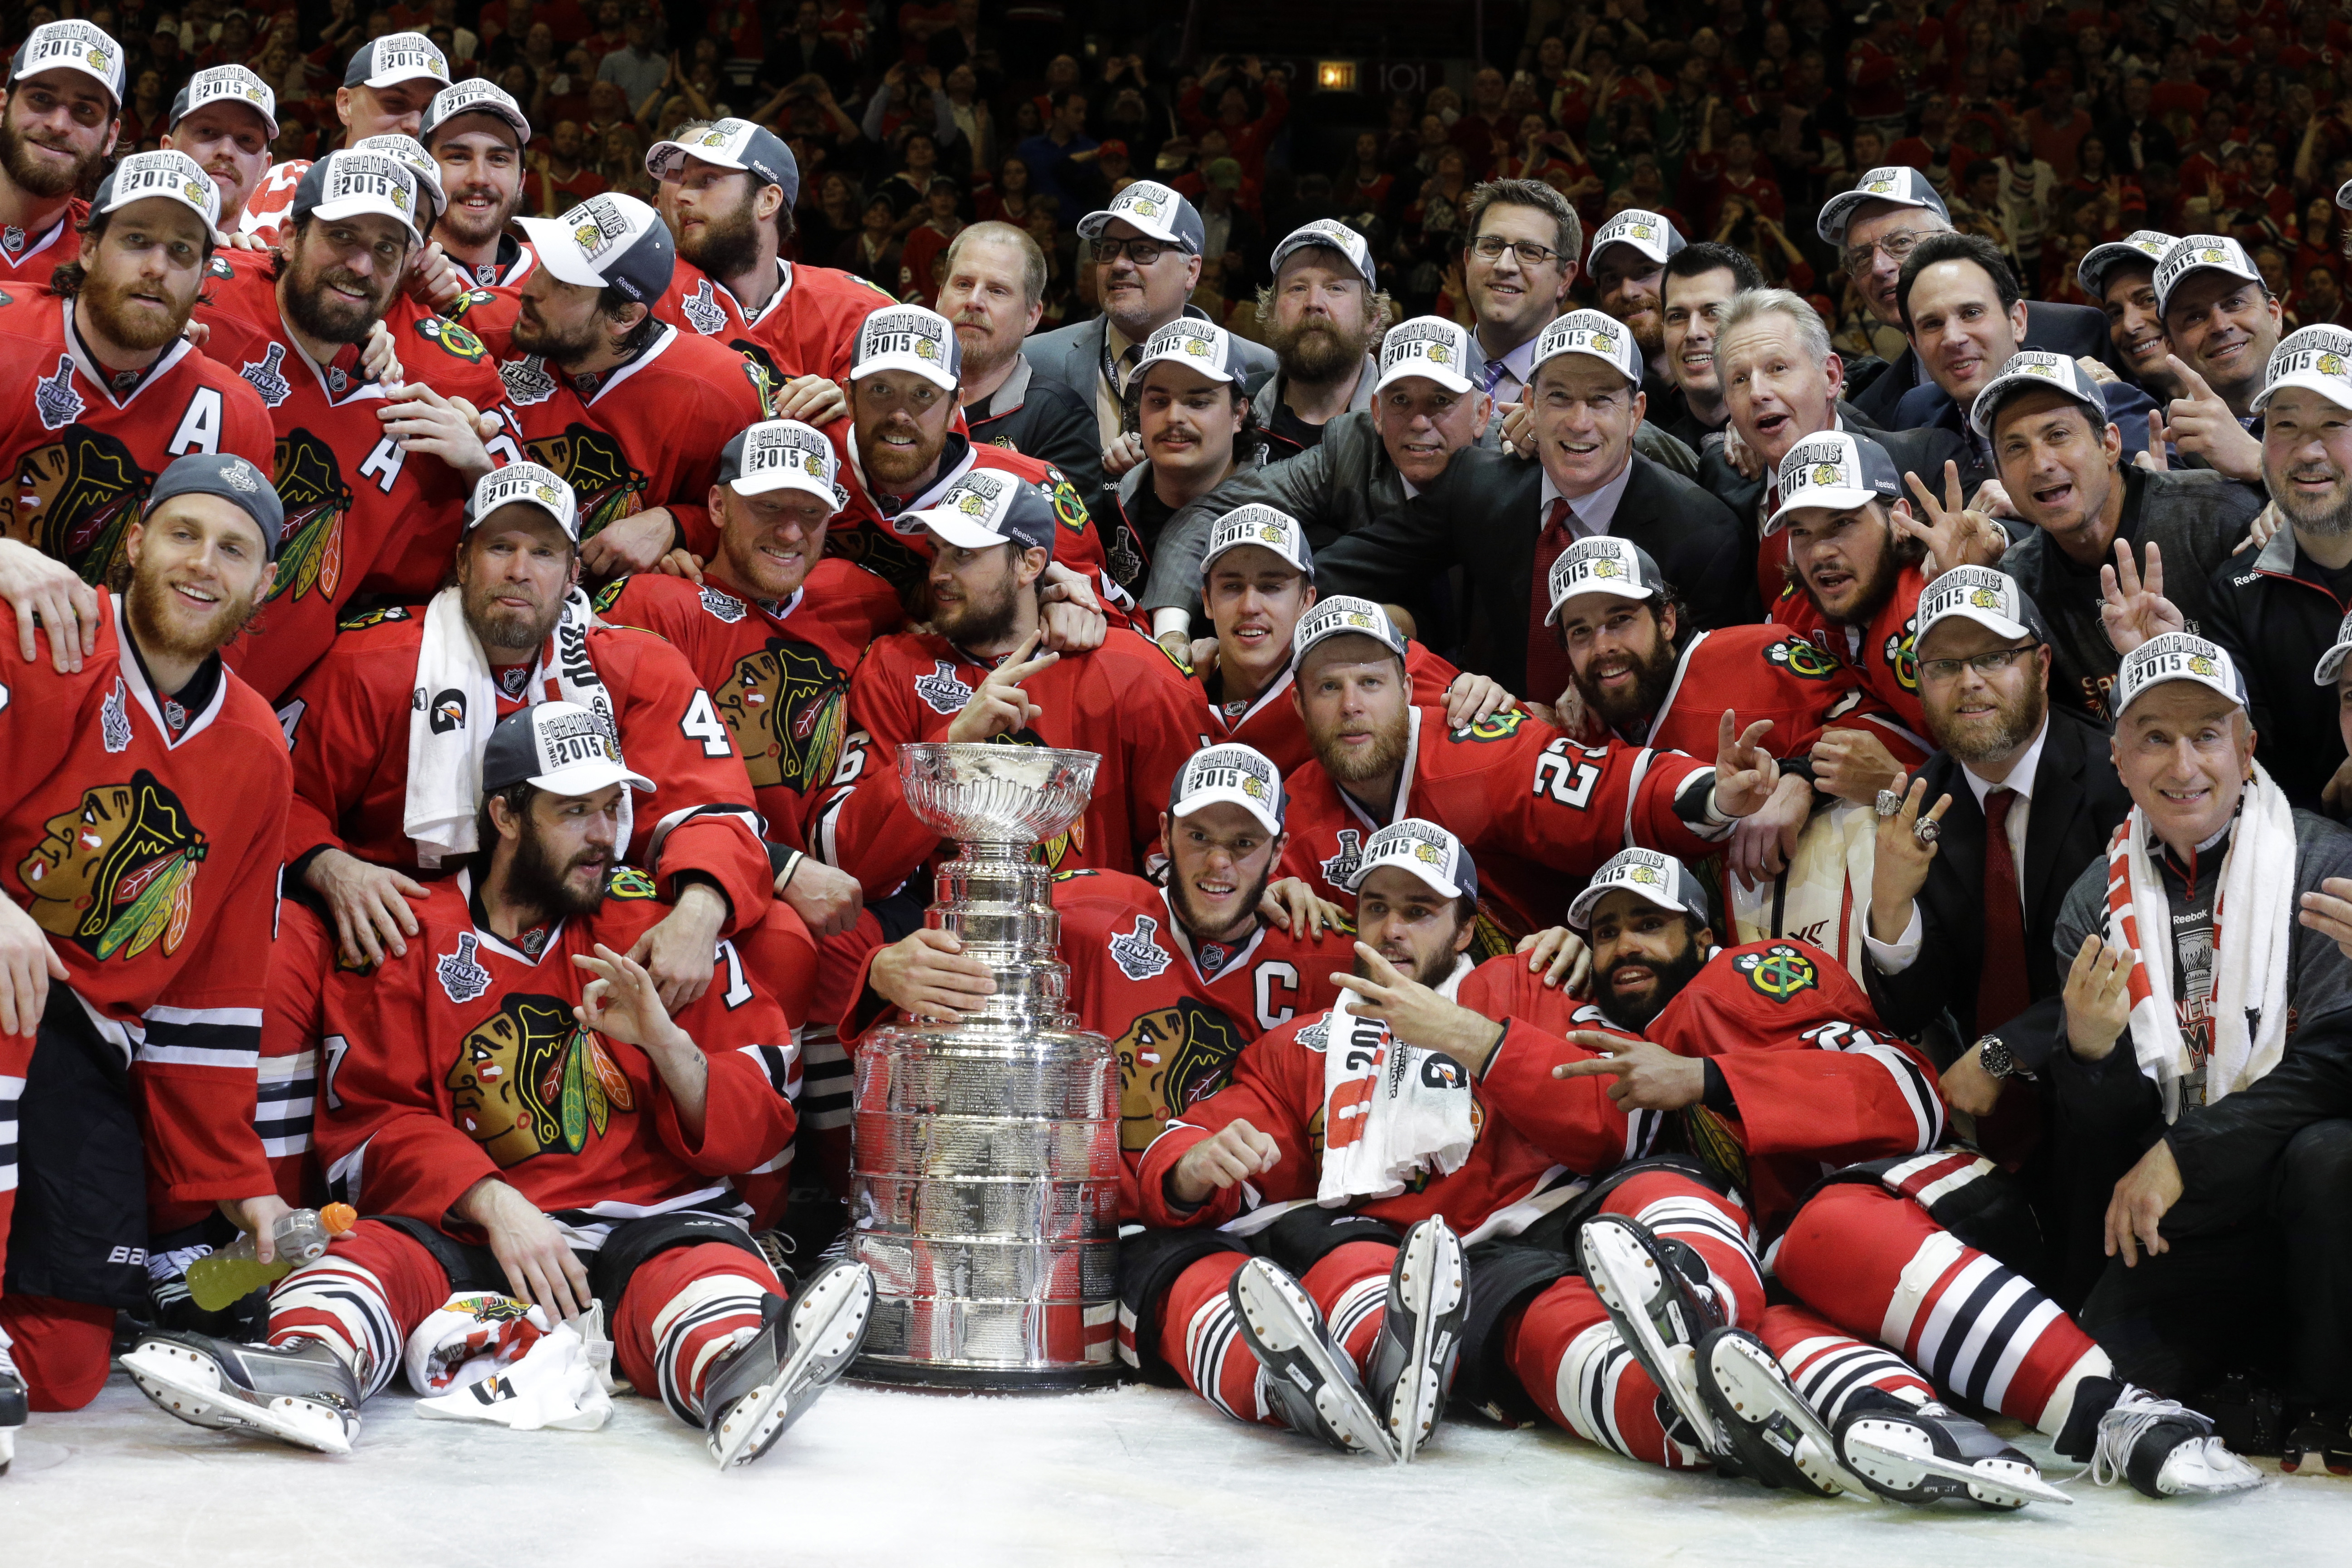 chicago blackhawks win 3rd stanley cup title in 6 years | wtop